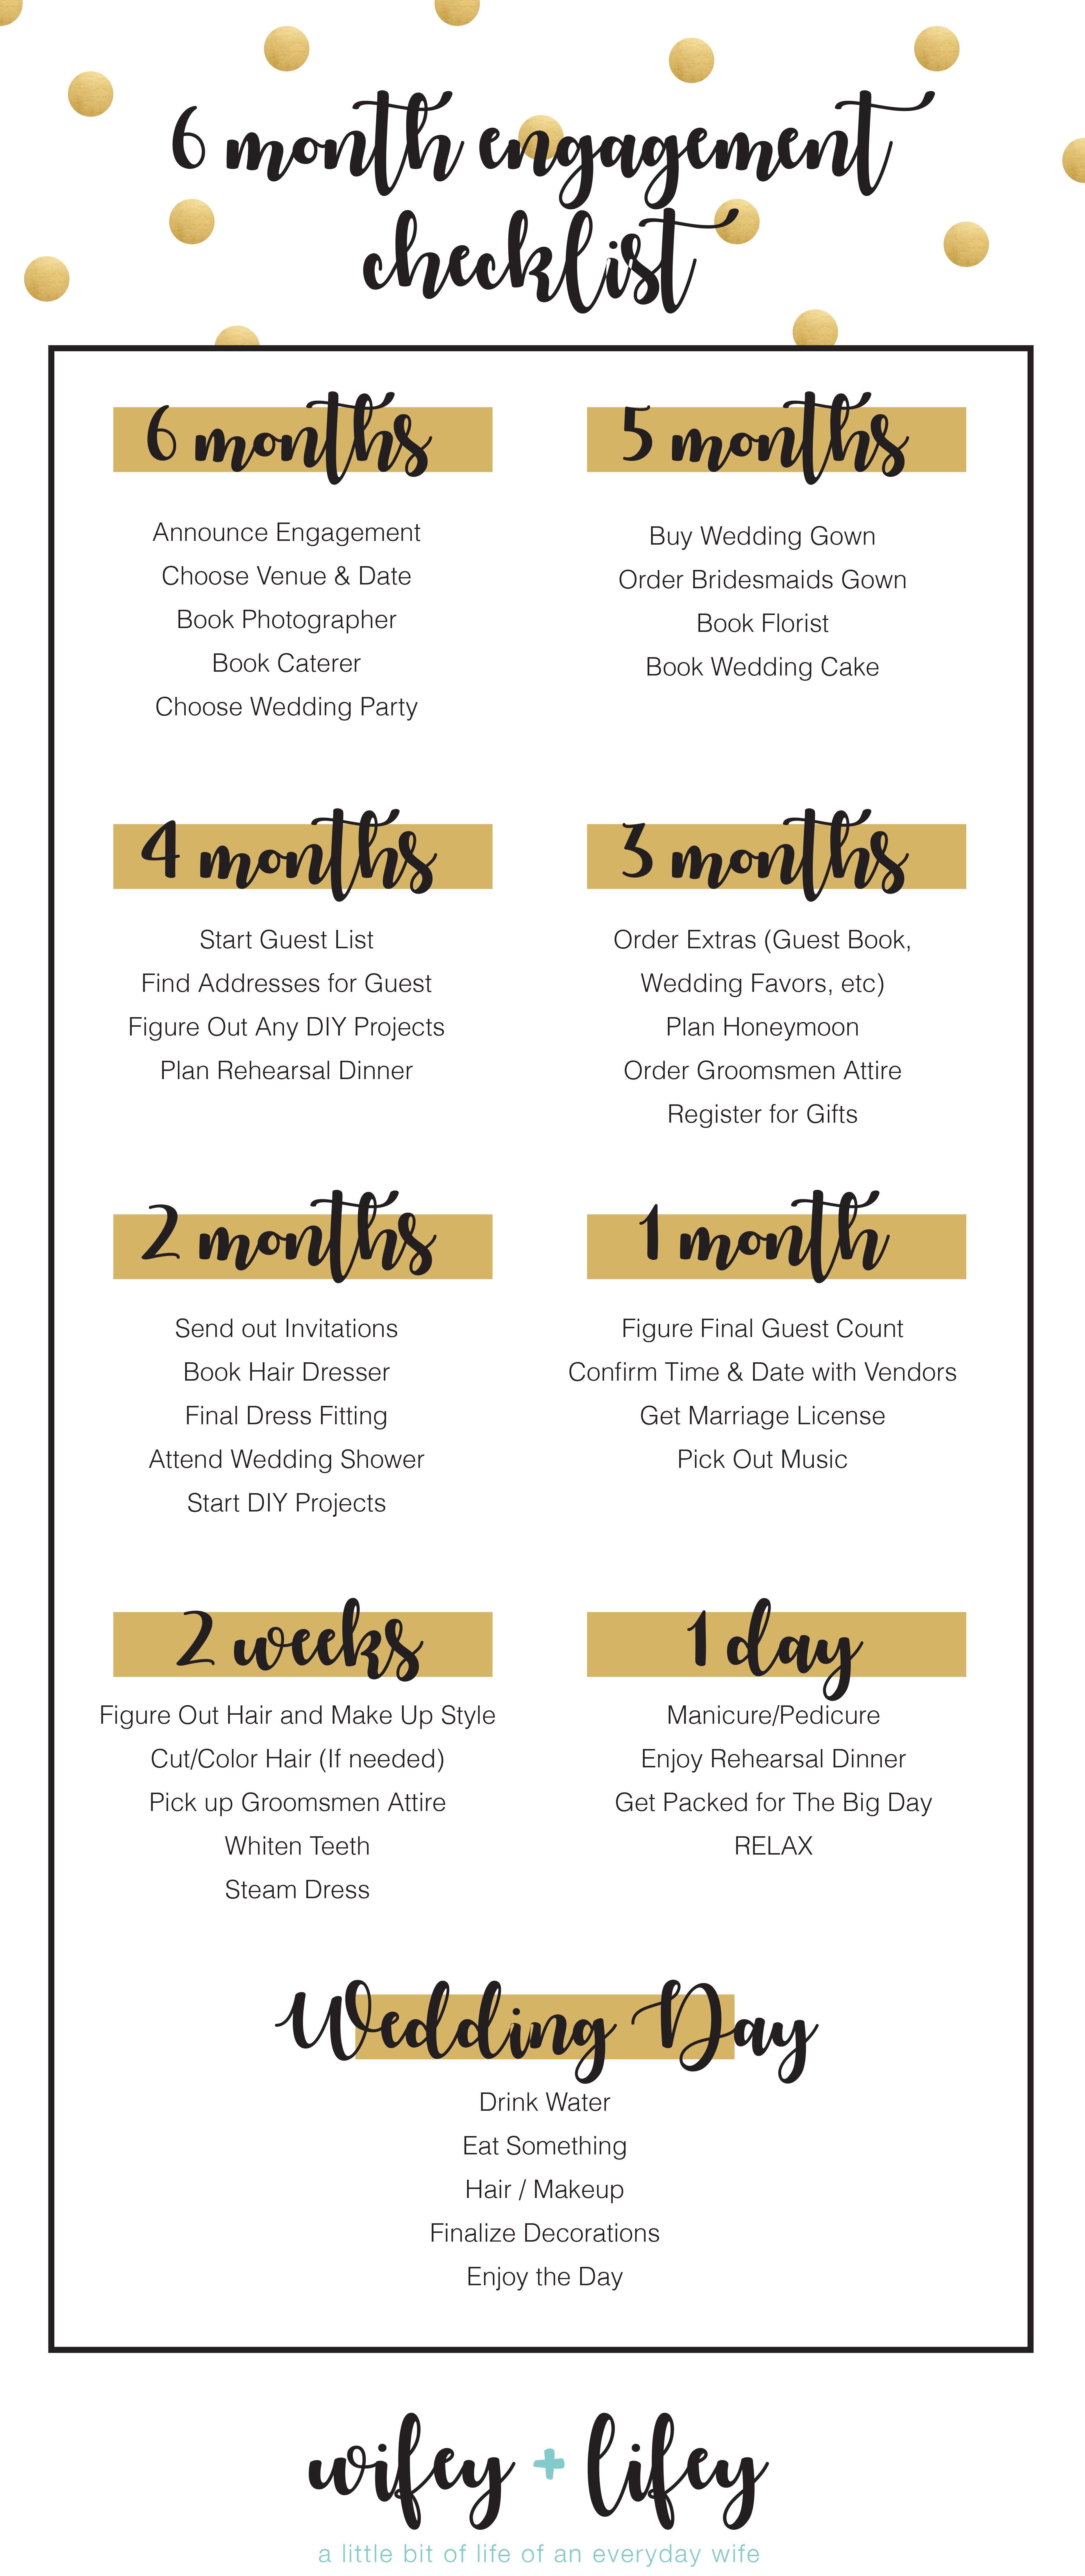 Are You Planning A Short Engagement Here Is A Helpful